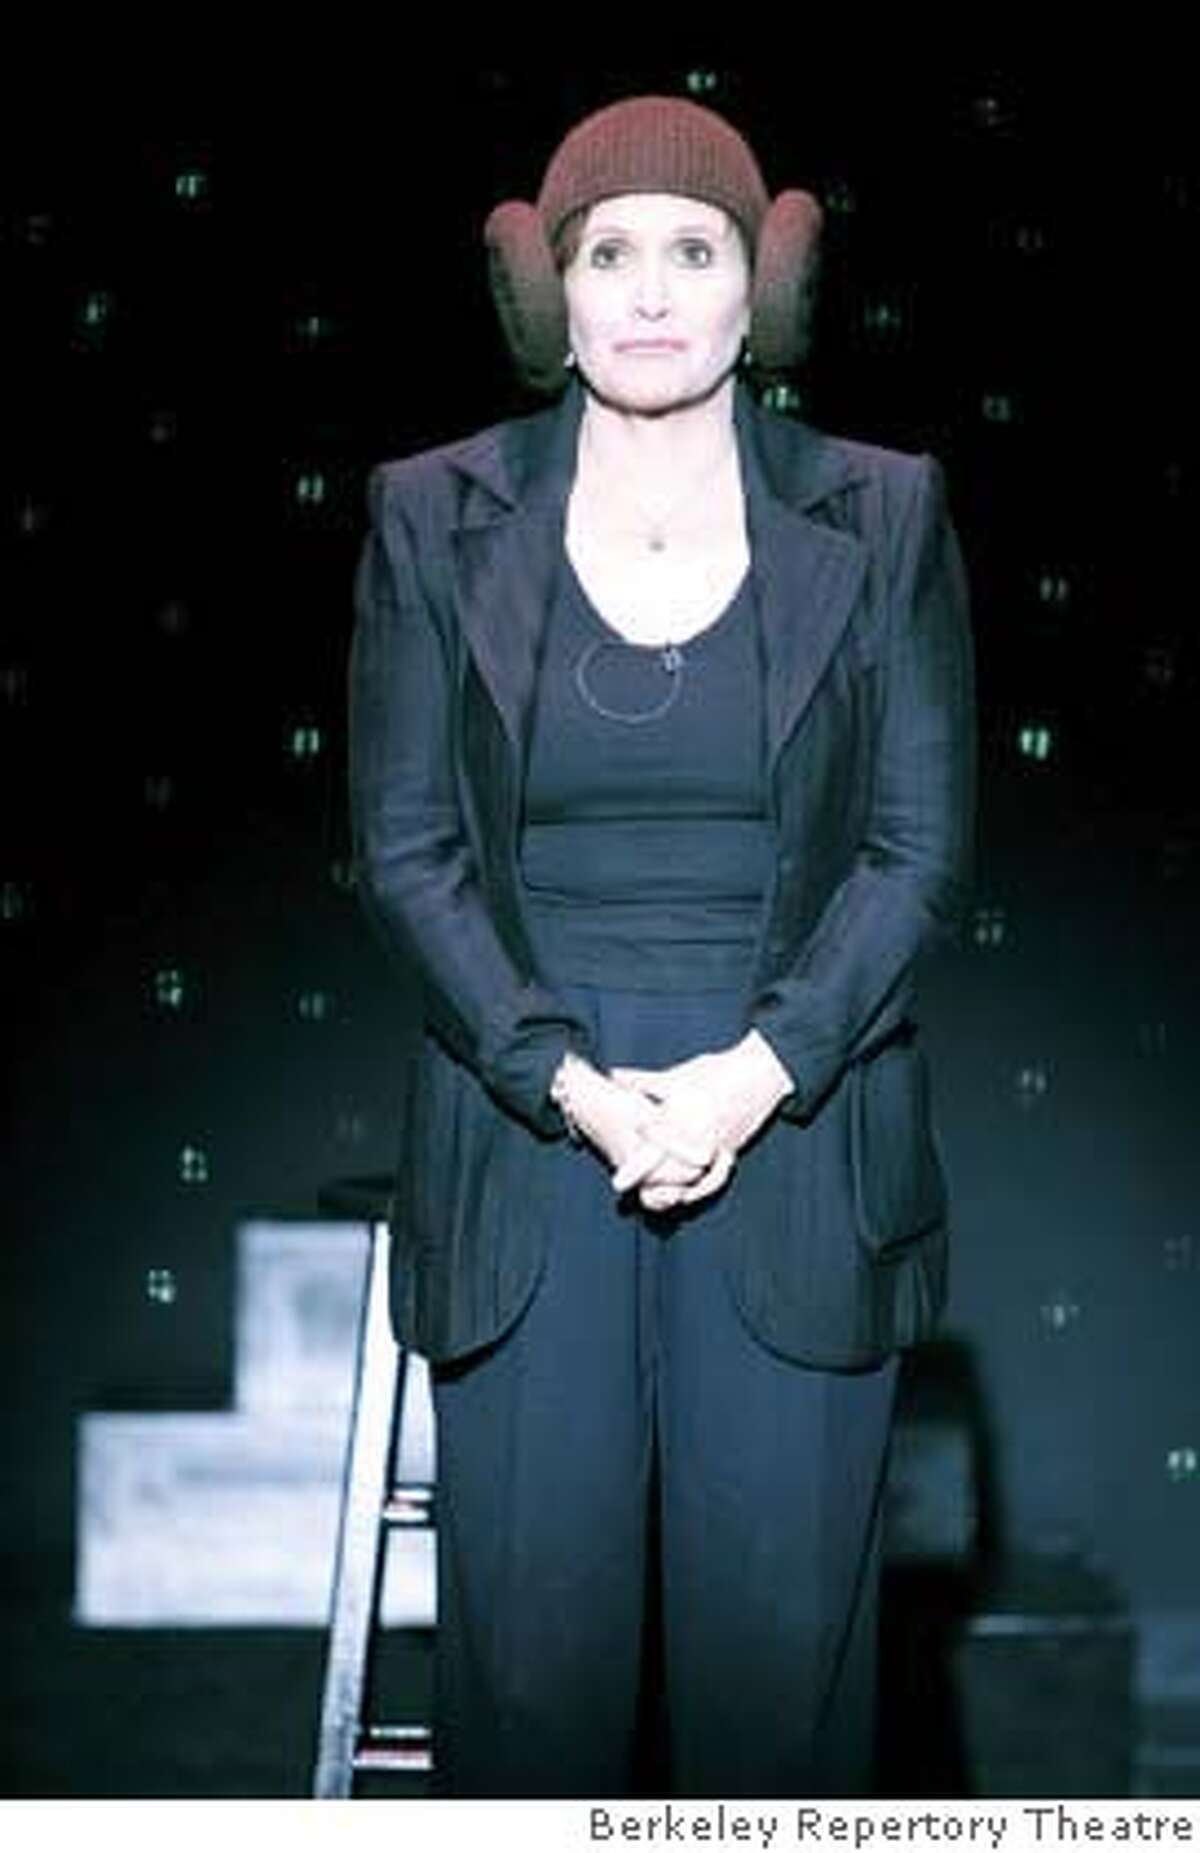 Carrie Fisher will present a solo show in 2008 at Berkeley Rep